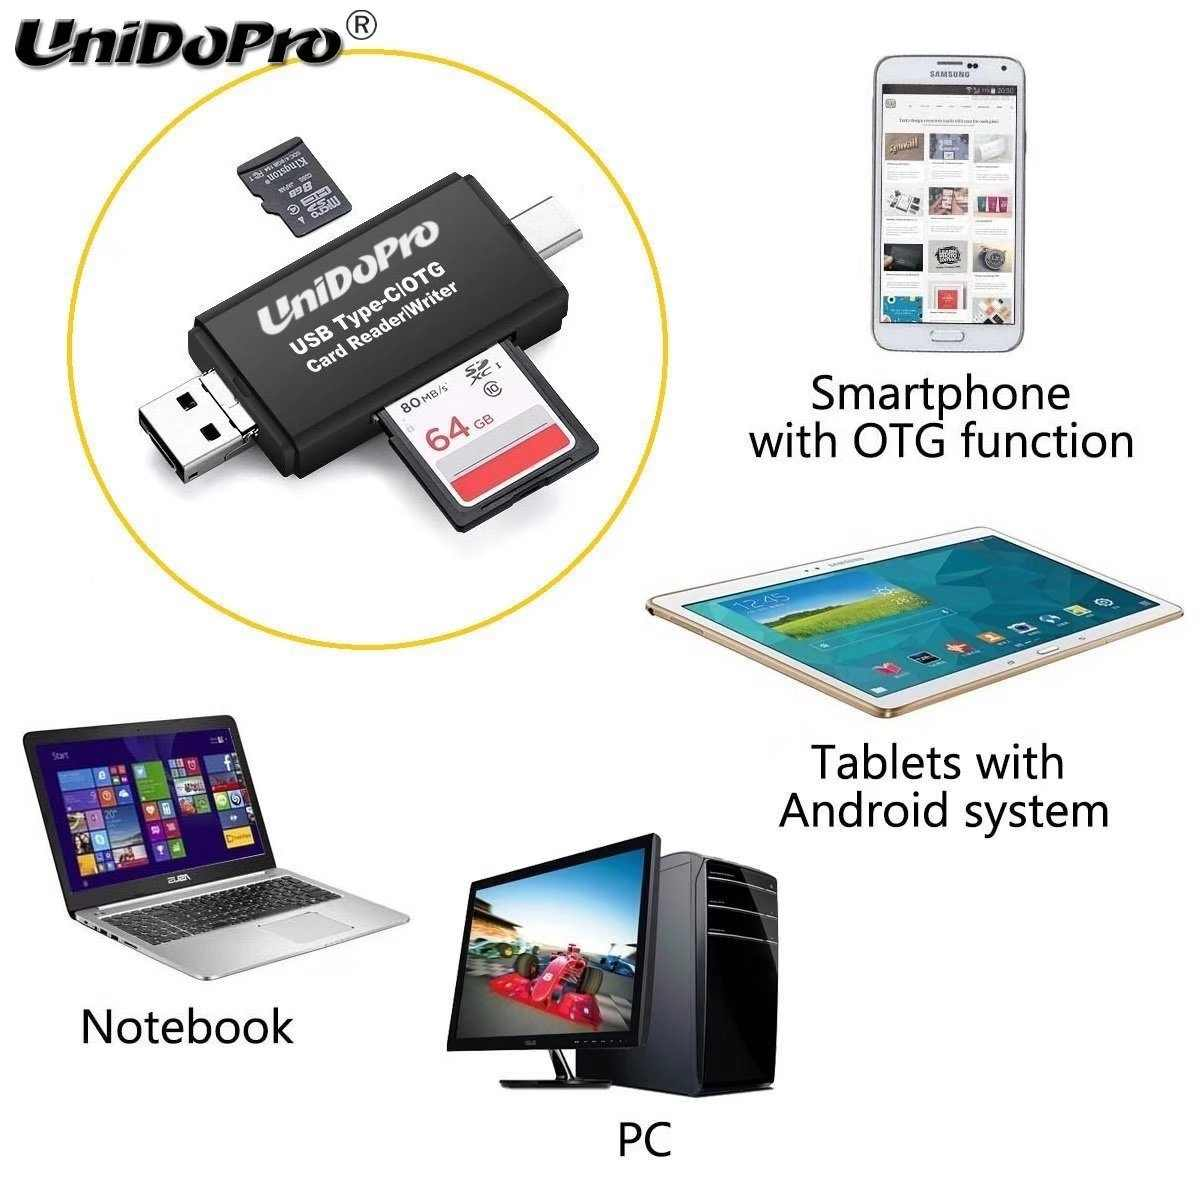 SanFlash PRO USB 3.0 Card Reader Works for Asus MeMO Pad HD 7 Adapter to Directly Read at 5Gbps Your MicroSDHC MicroSDXC Cards